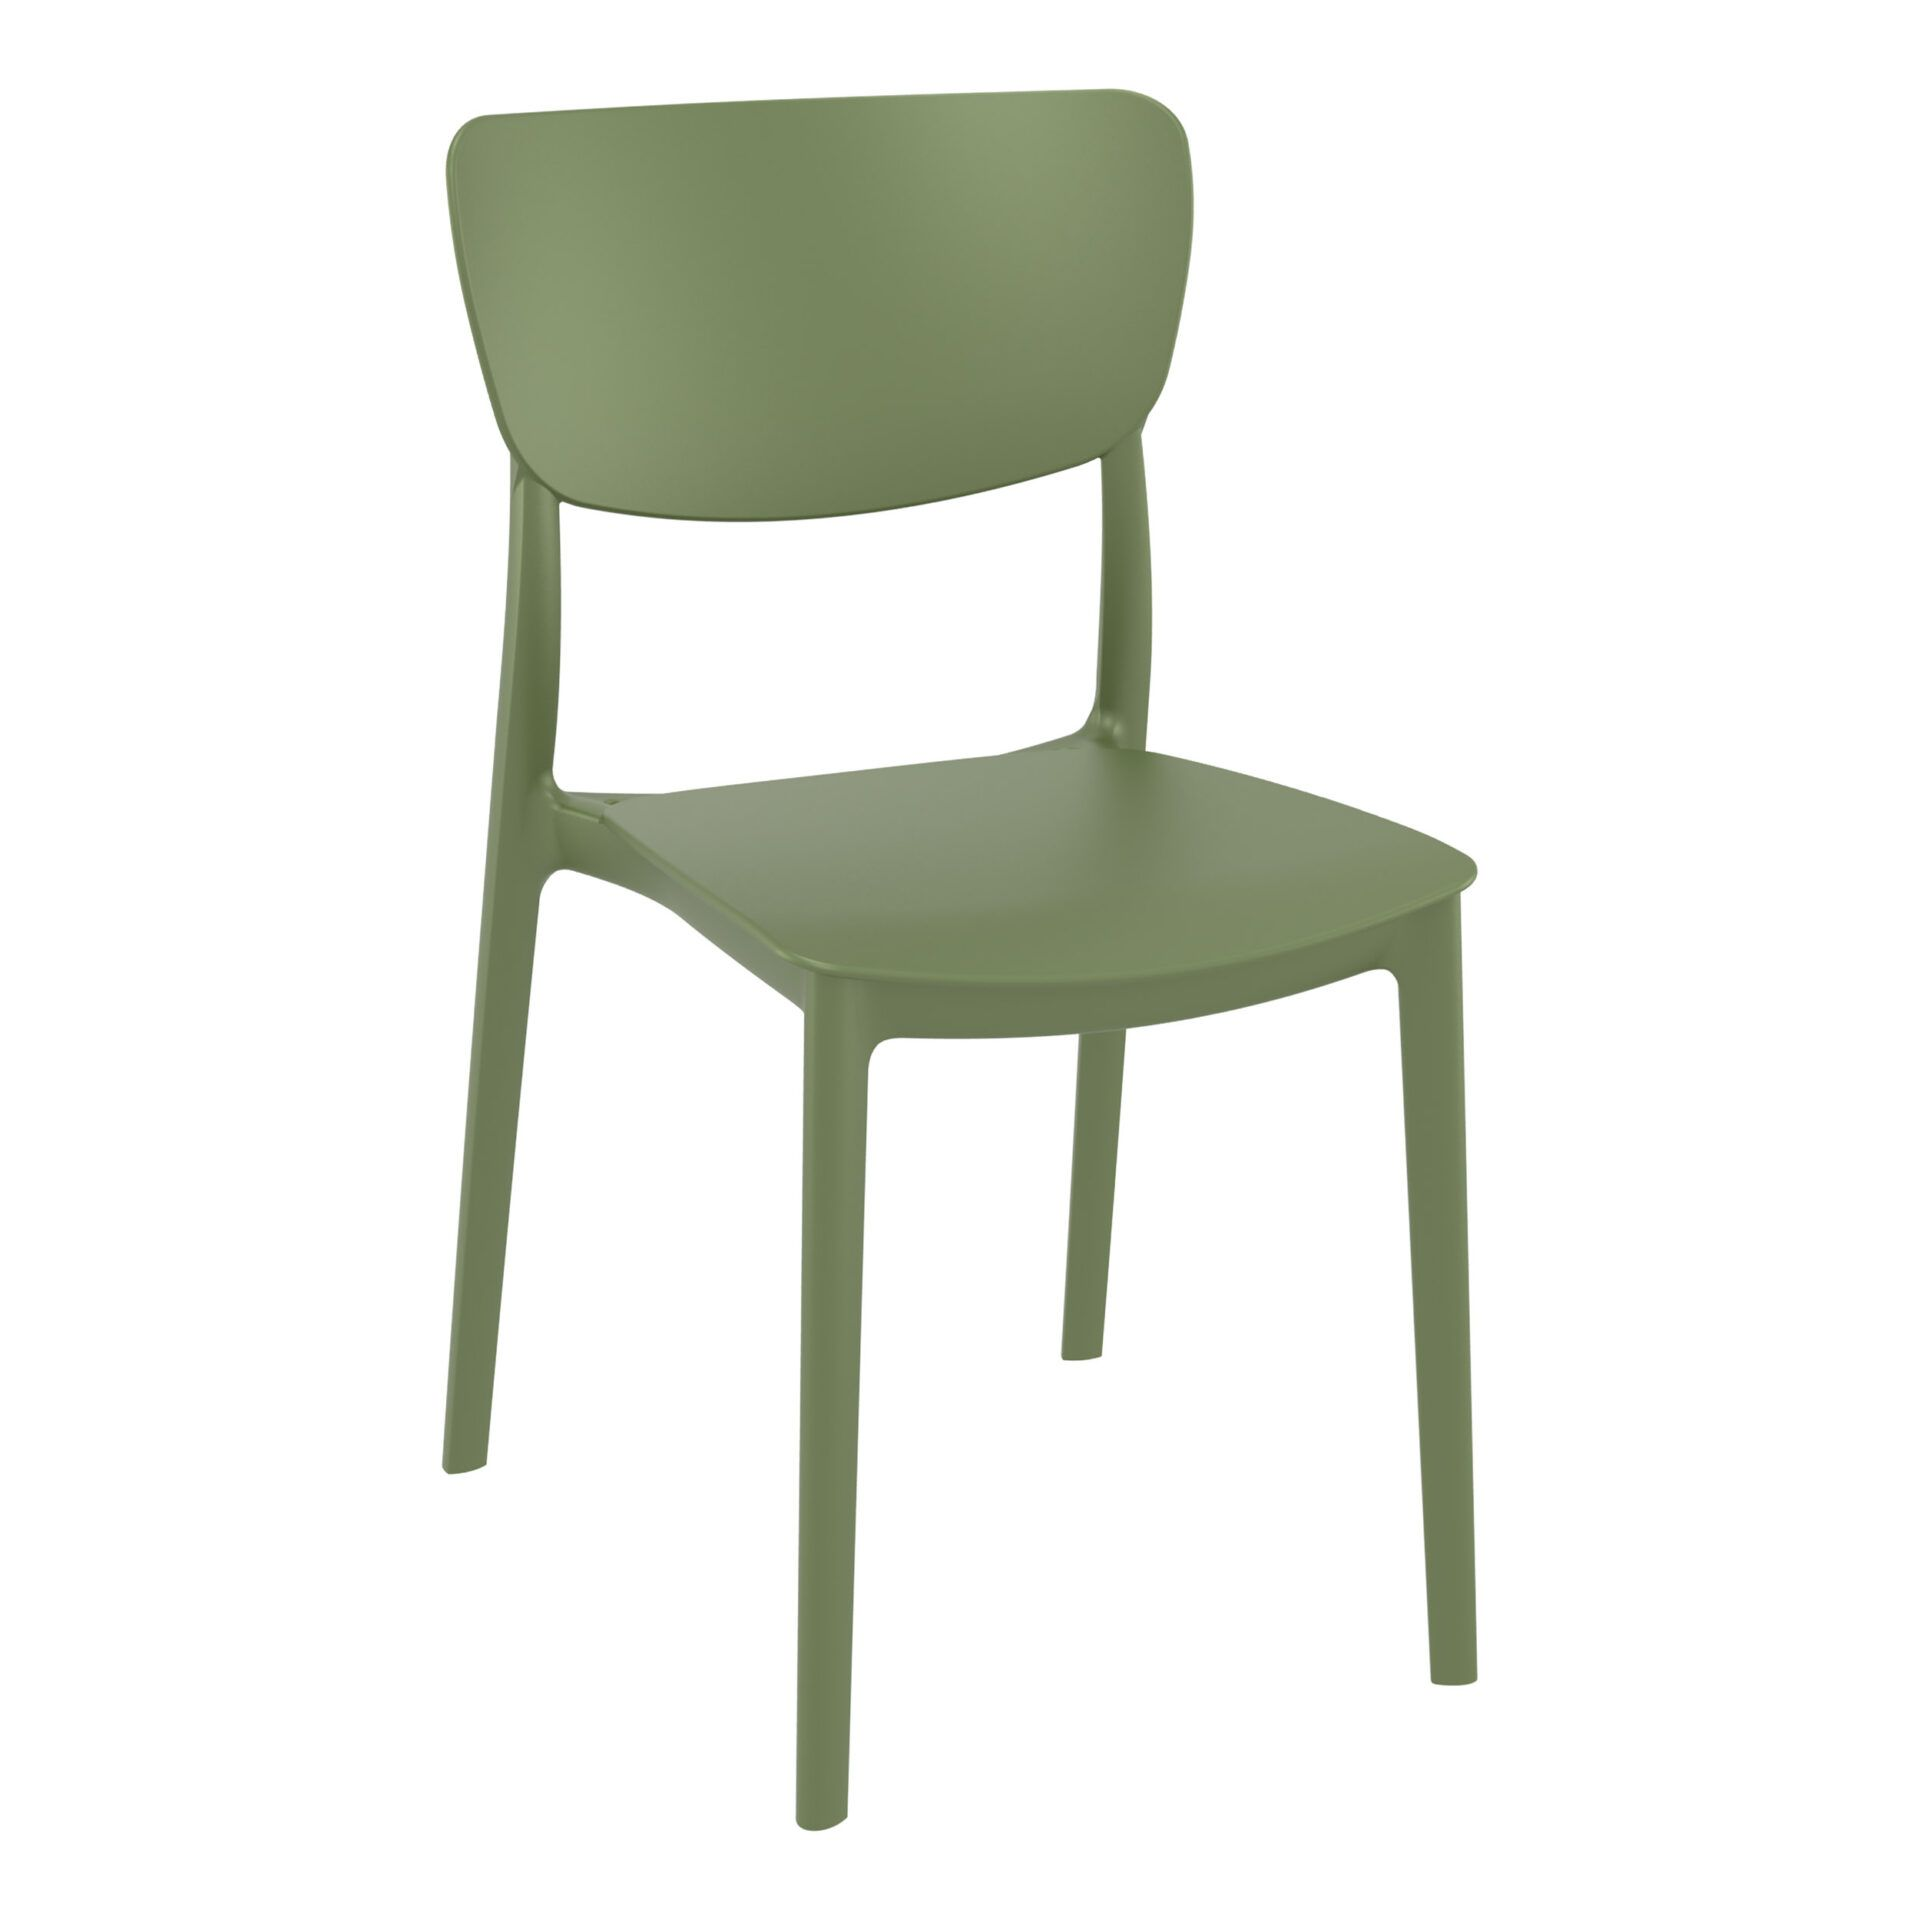 polypropylene outdoor dining monna chair olive green front side